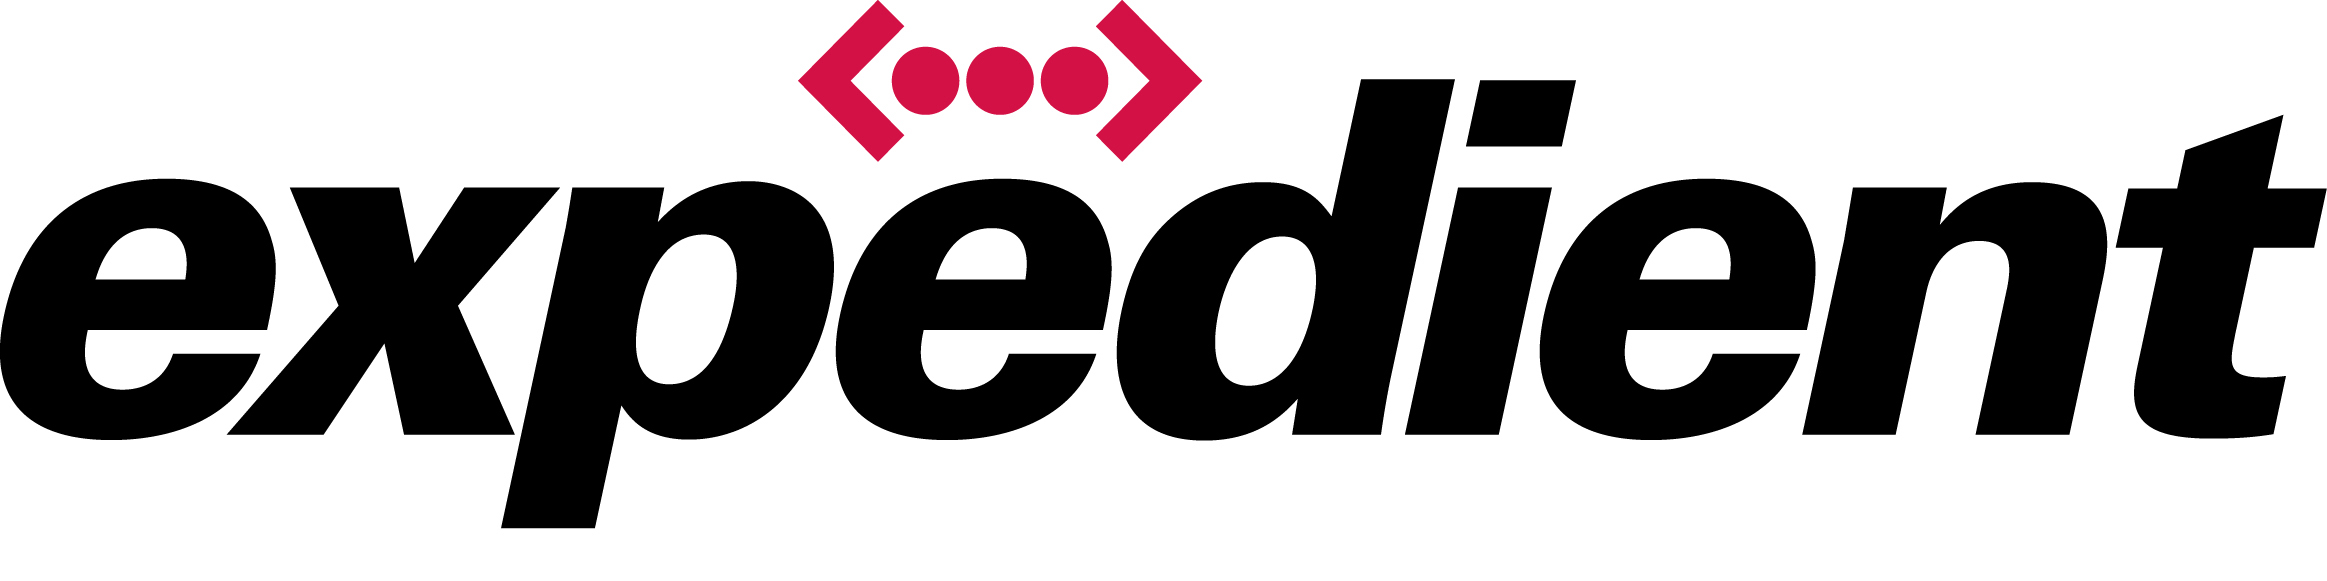 expedient logo